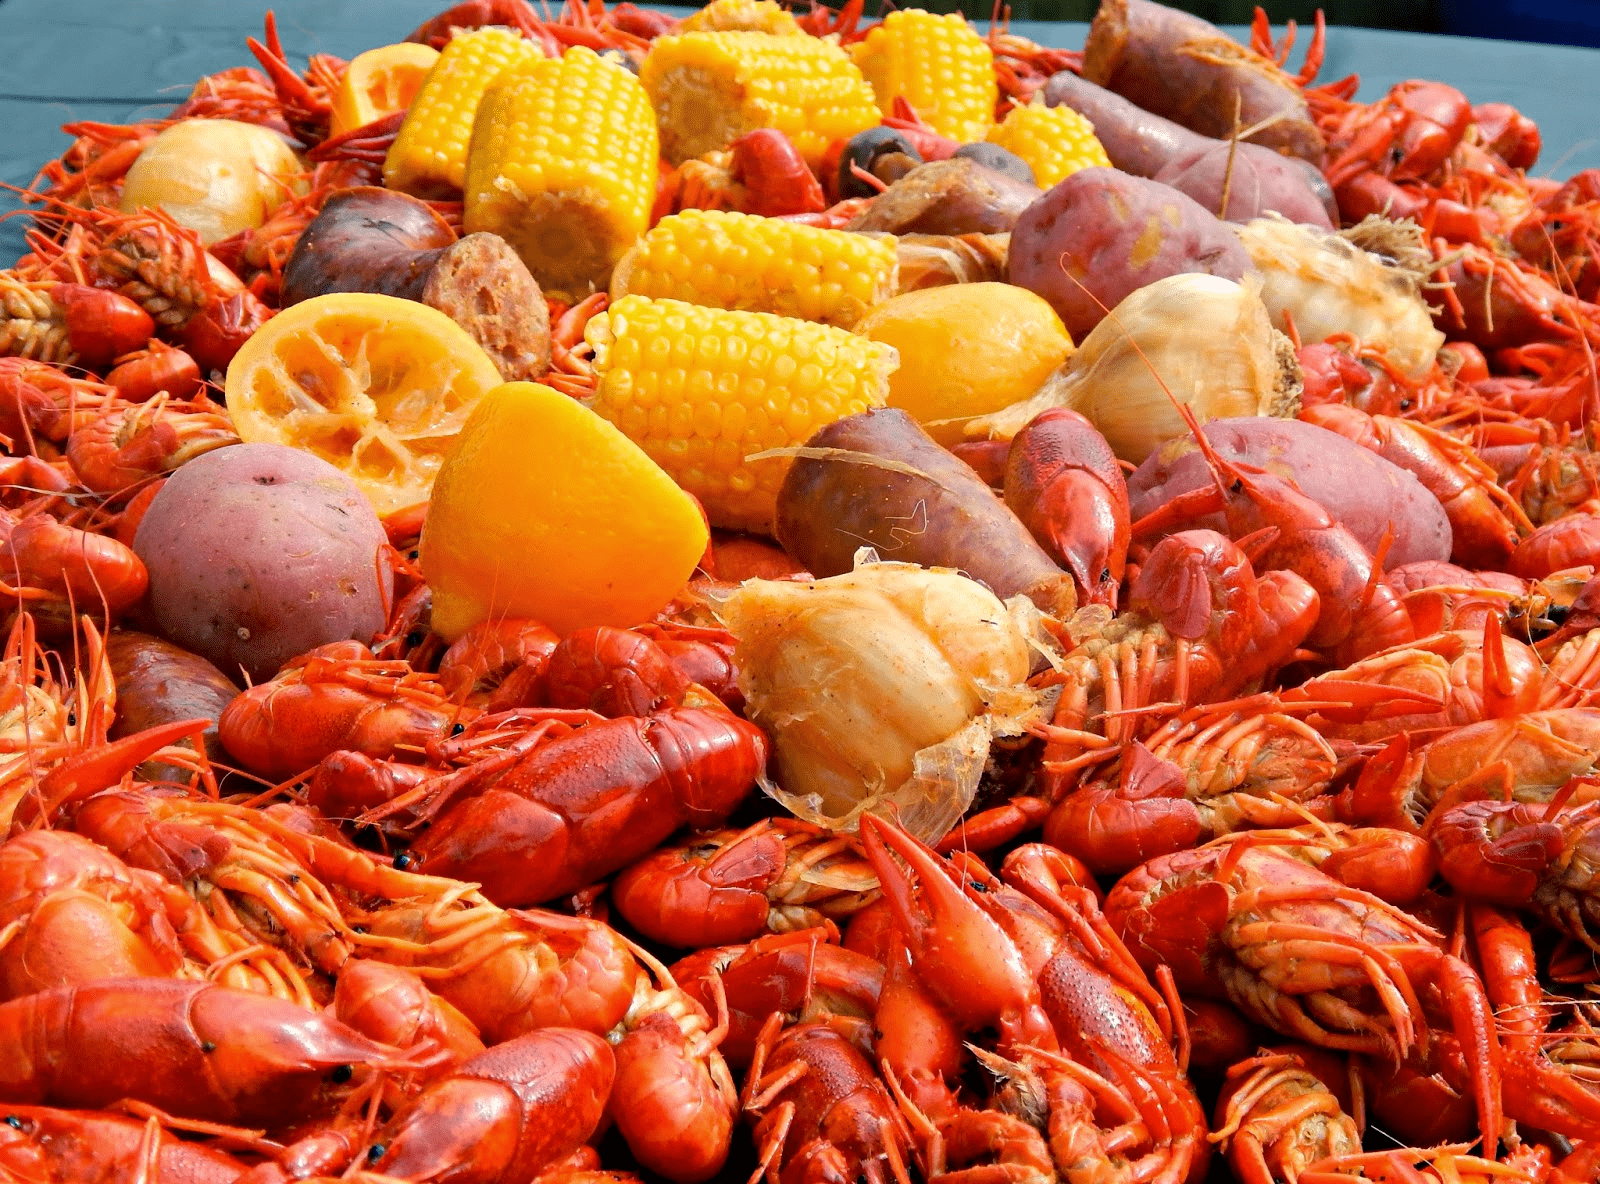 4/17/21 - CRAWFISH BOIL - 12 PM START TIME - $30